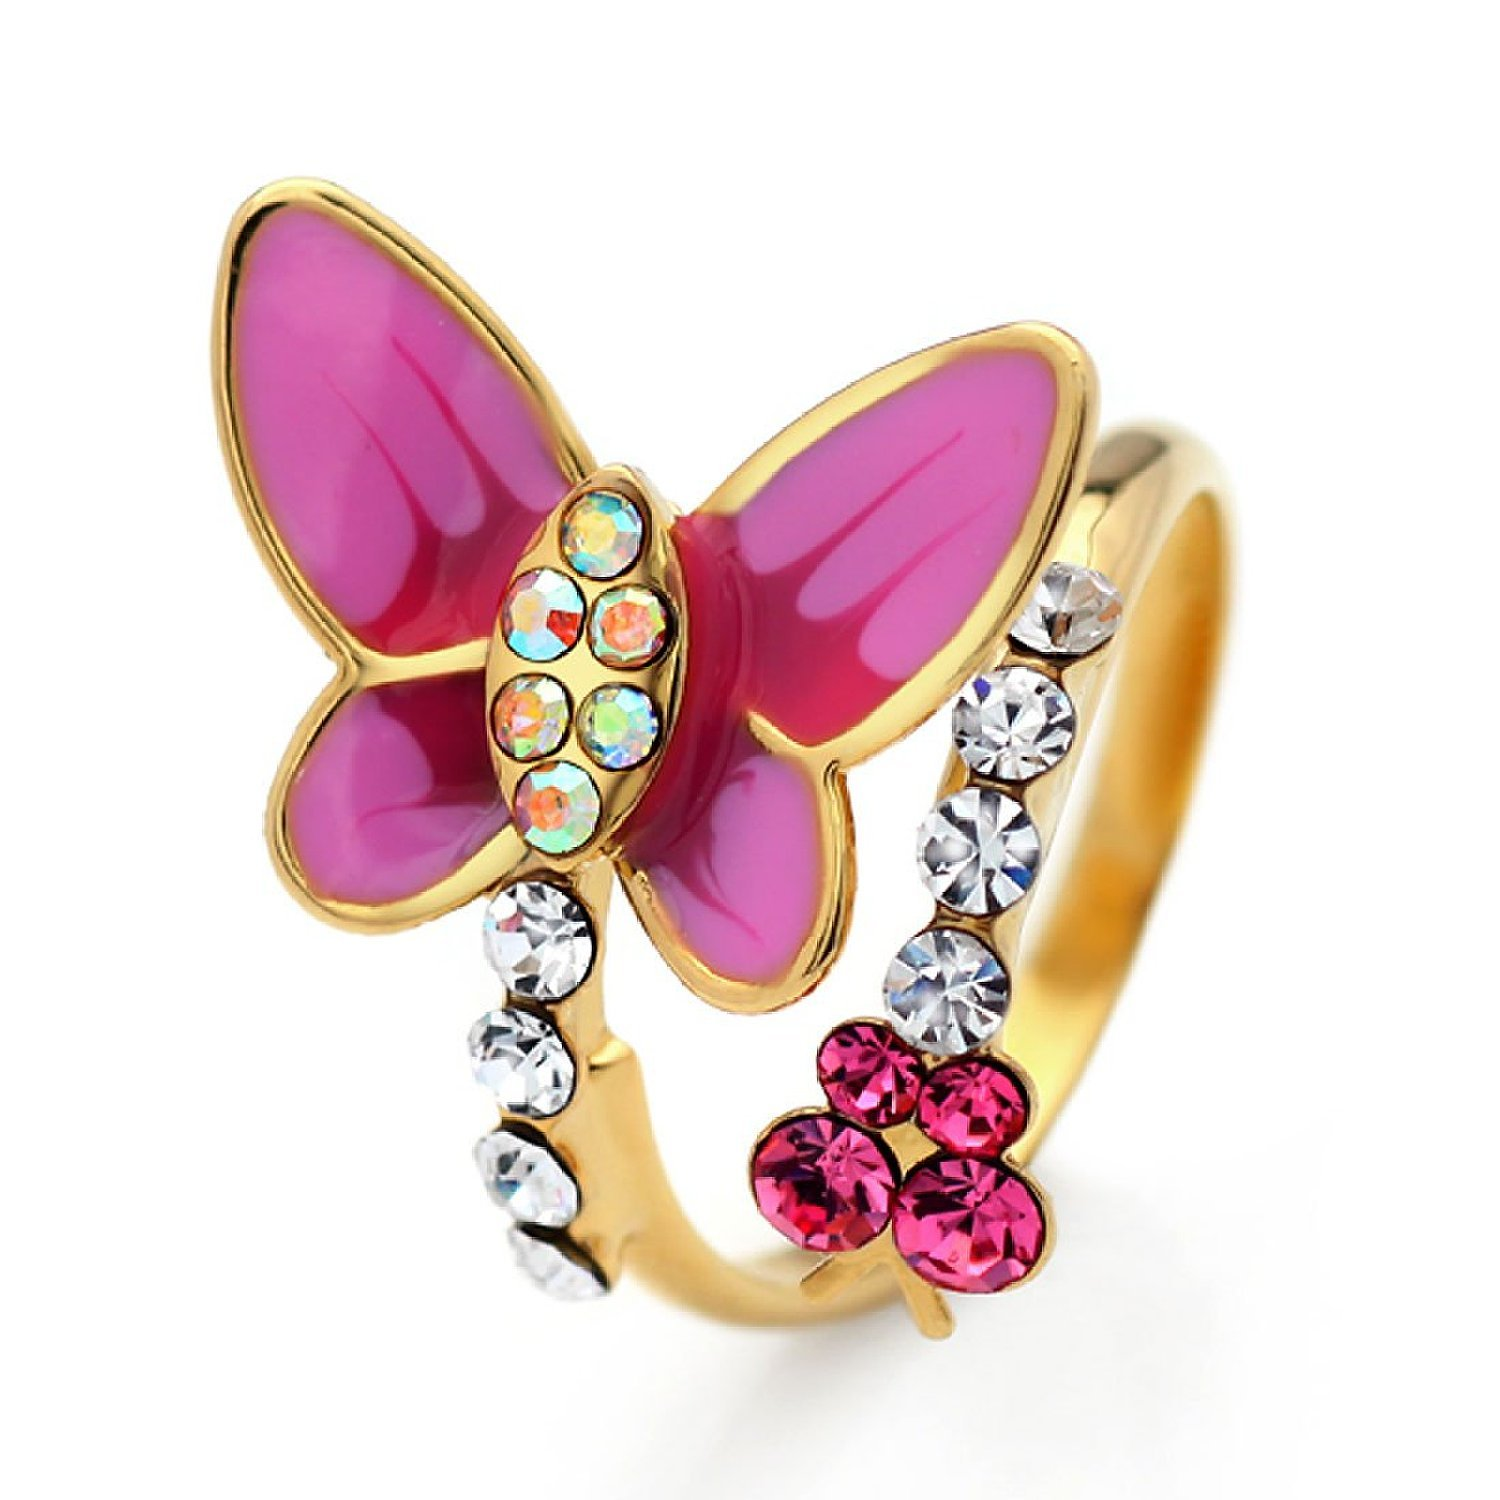 Neoglory Jewelry Christmas Valentines Day Gift Enamel Butterfly Bees Freesize Rings With Colorful Rhinestone 3 Colors Neoglory Jewelry Company 211161791300AFN